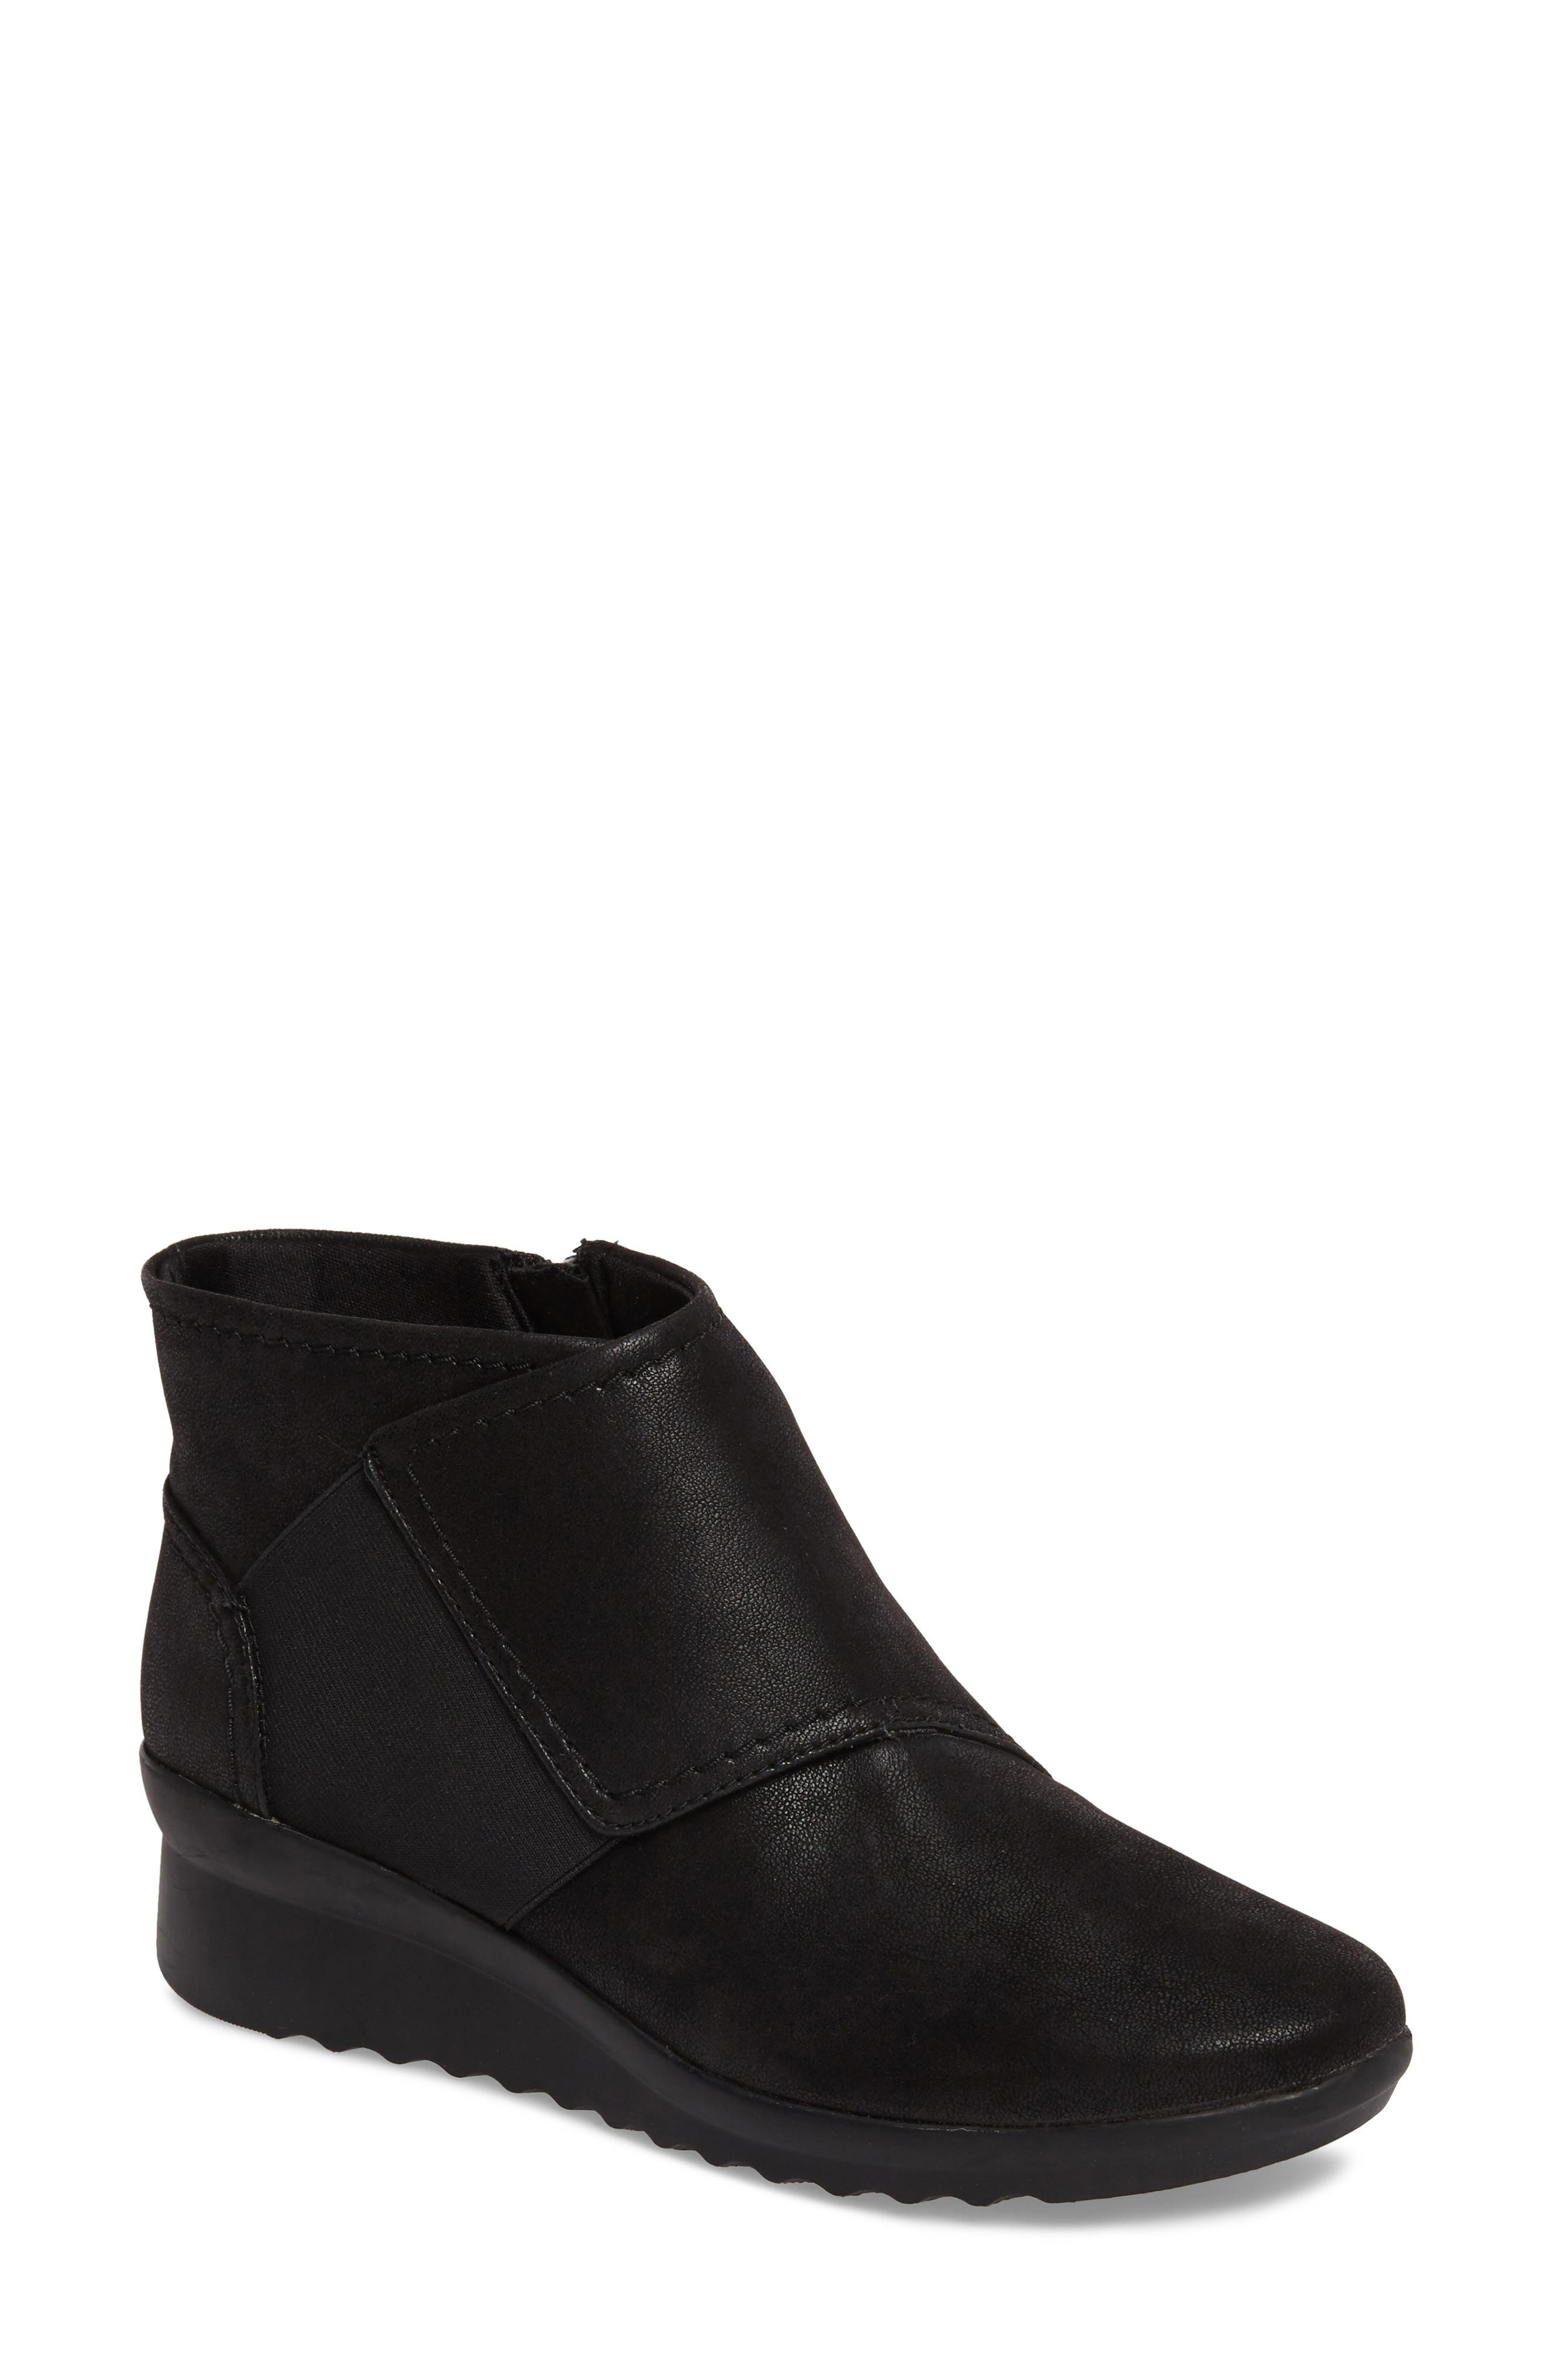 Caddell Rush Bootie,                             Main thumbnail 1, color,                             005